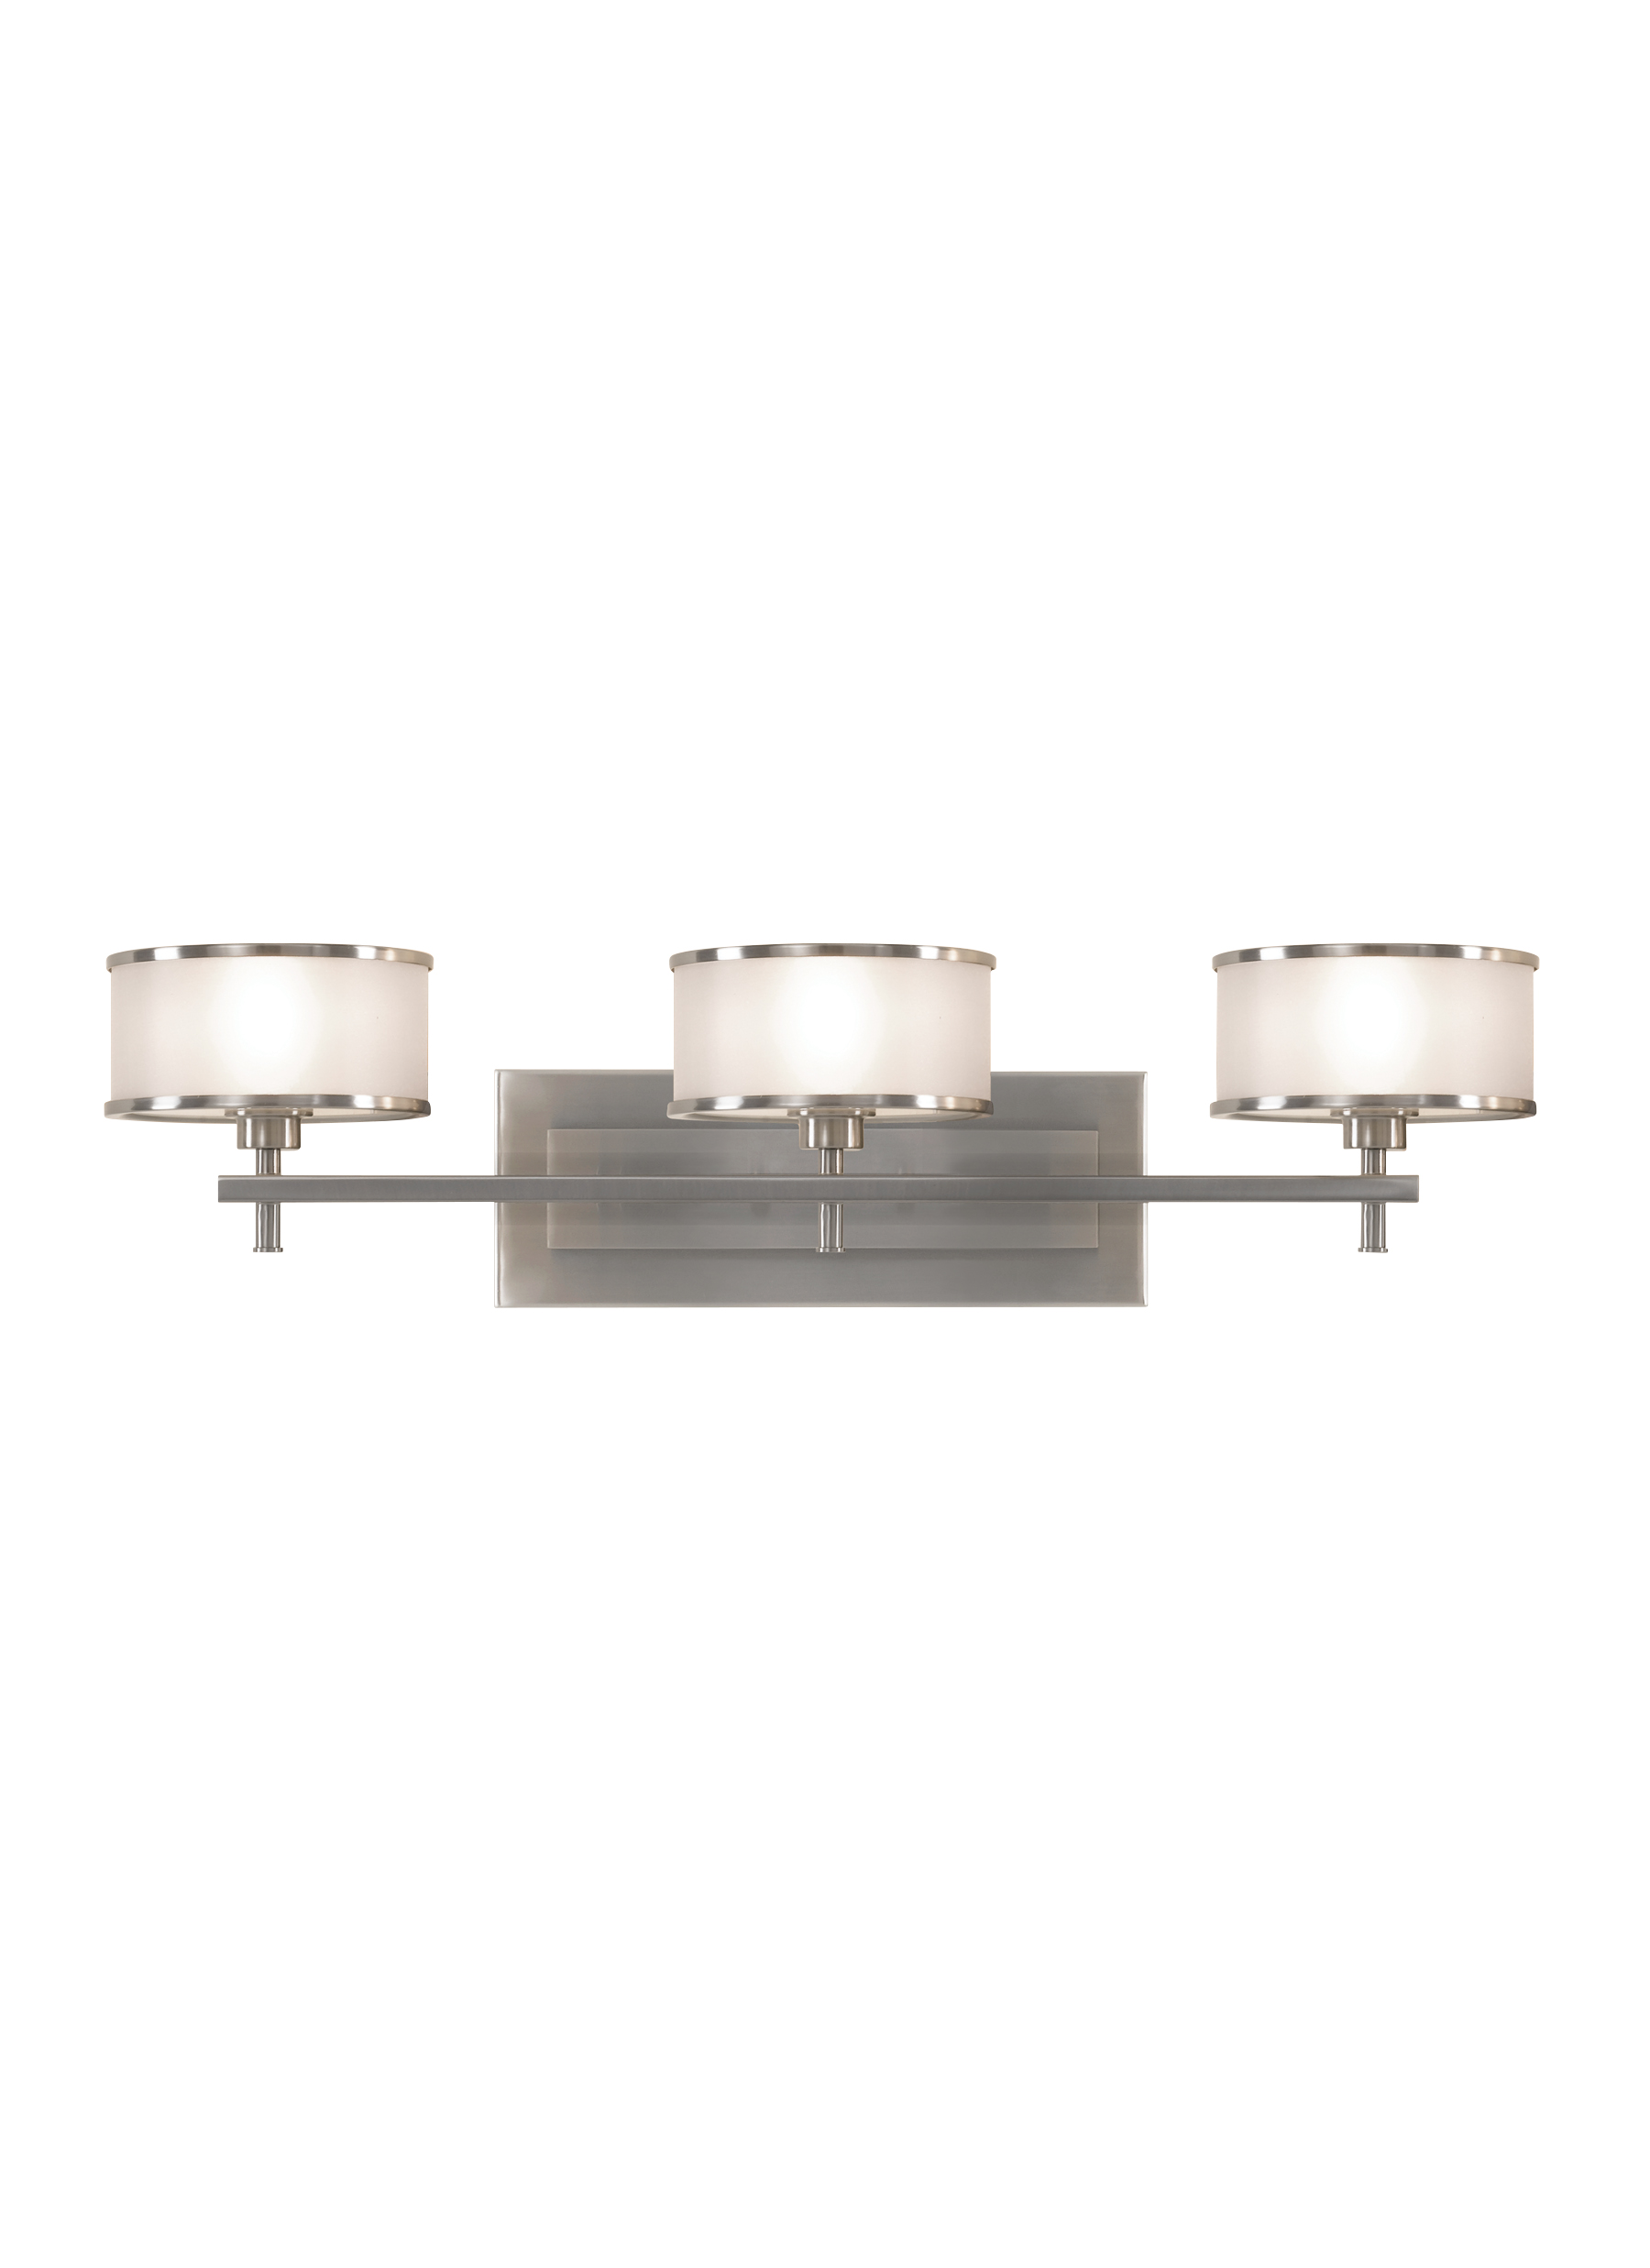 Vs13703 bs3 light vanity fixturebrushed steel loading zoom aloadofball Gallery